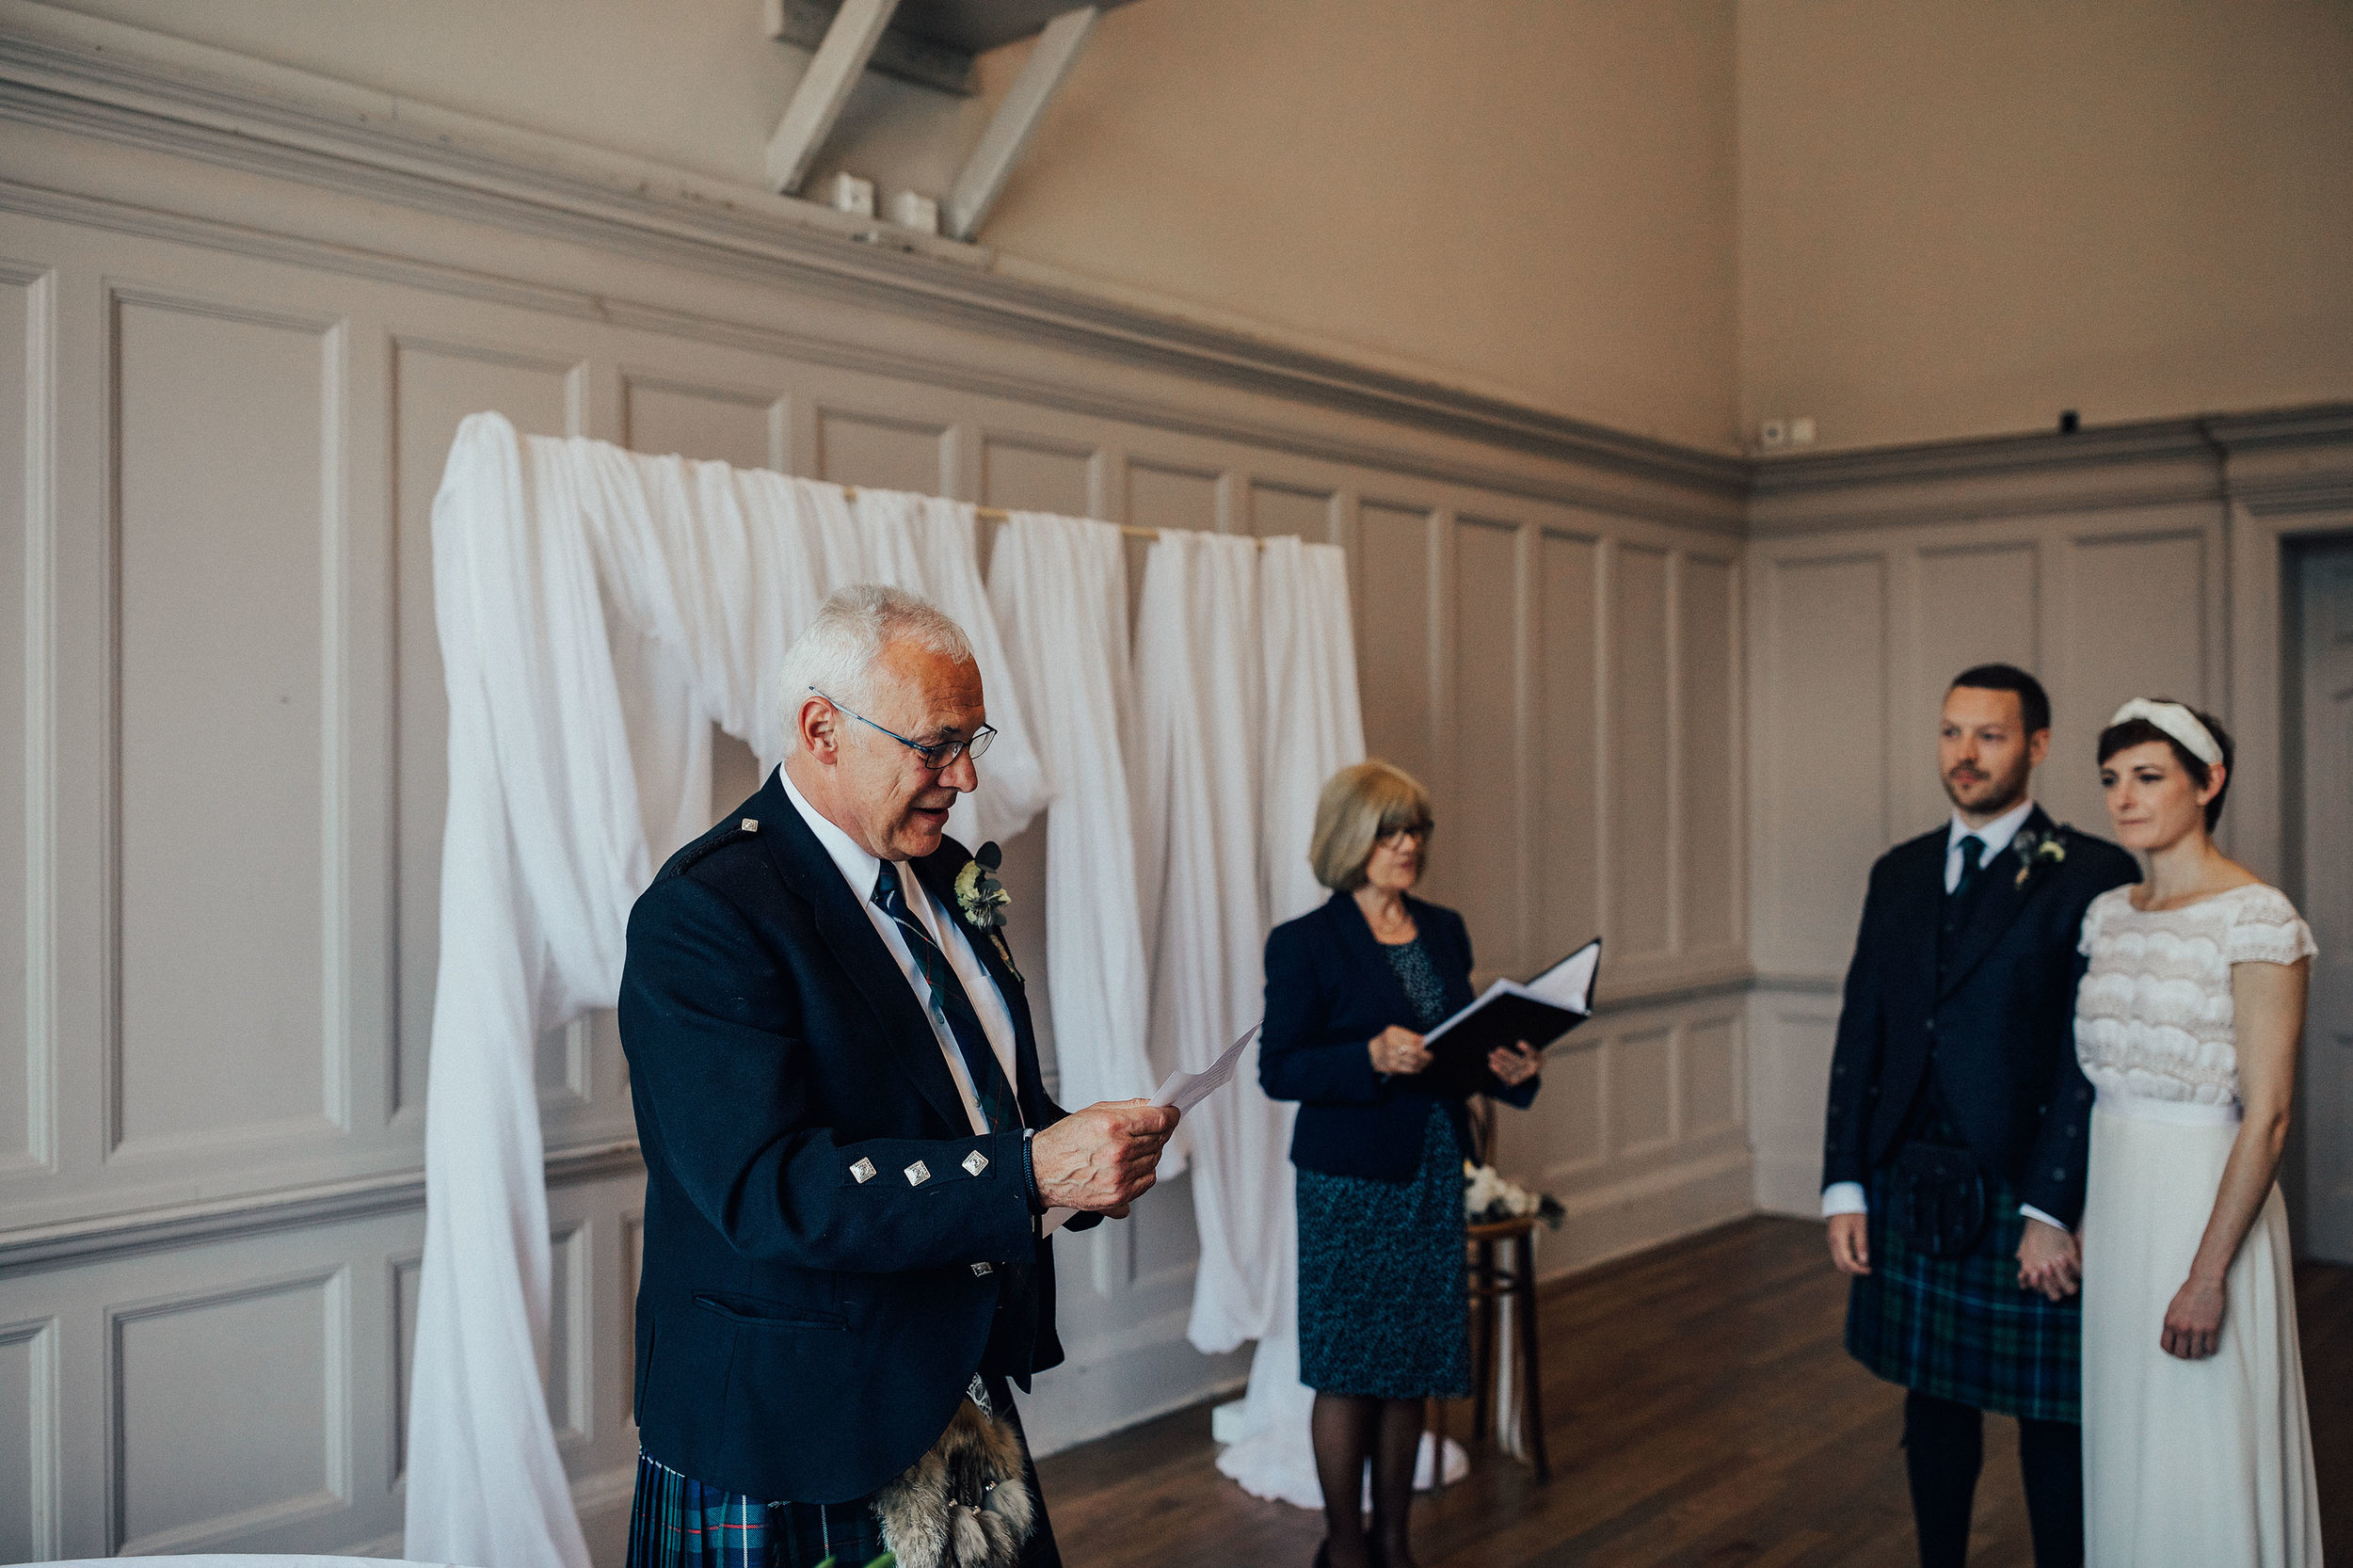 TIMBERYARD_EDINBURGH_WEDDING_PJ_PHILLIPS_PHOTOGRAPHY_69.jpg